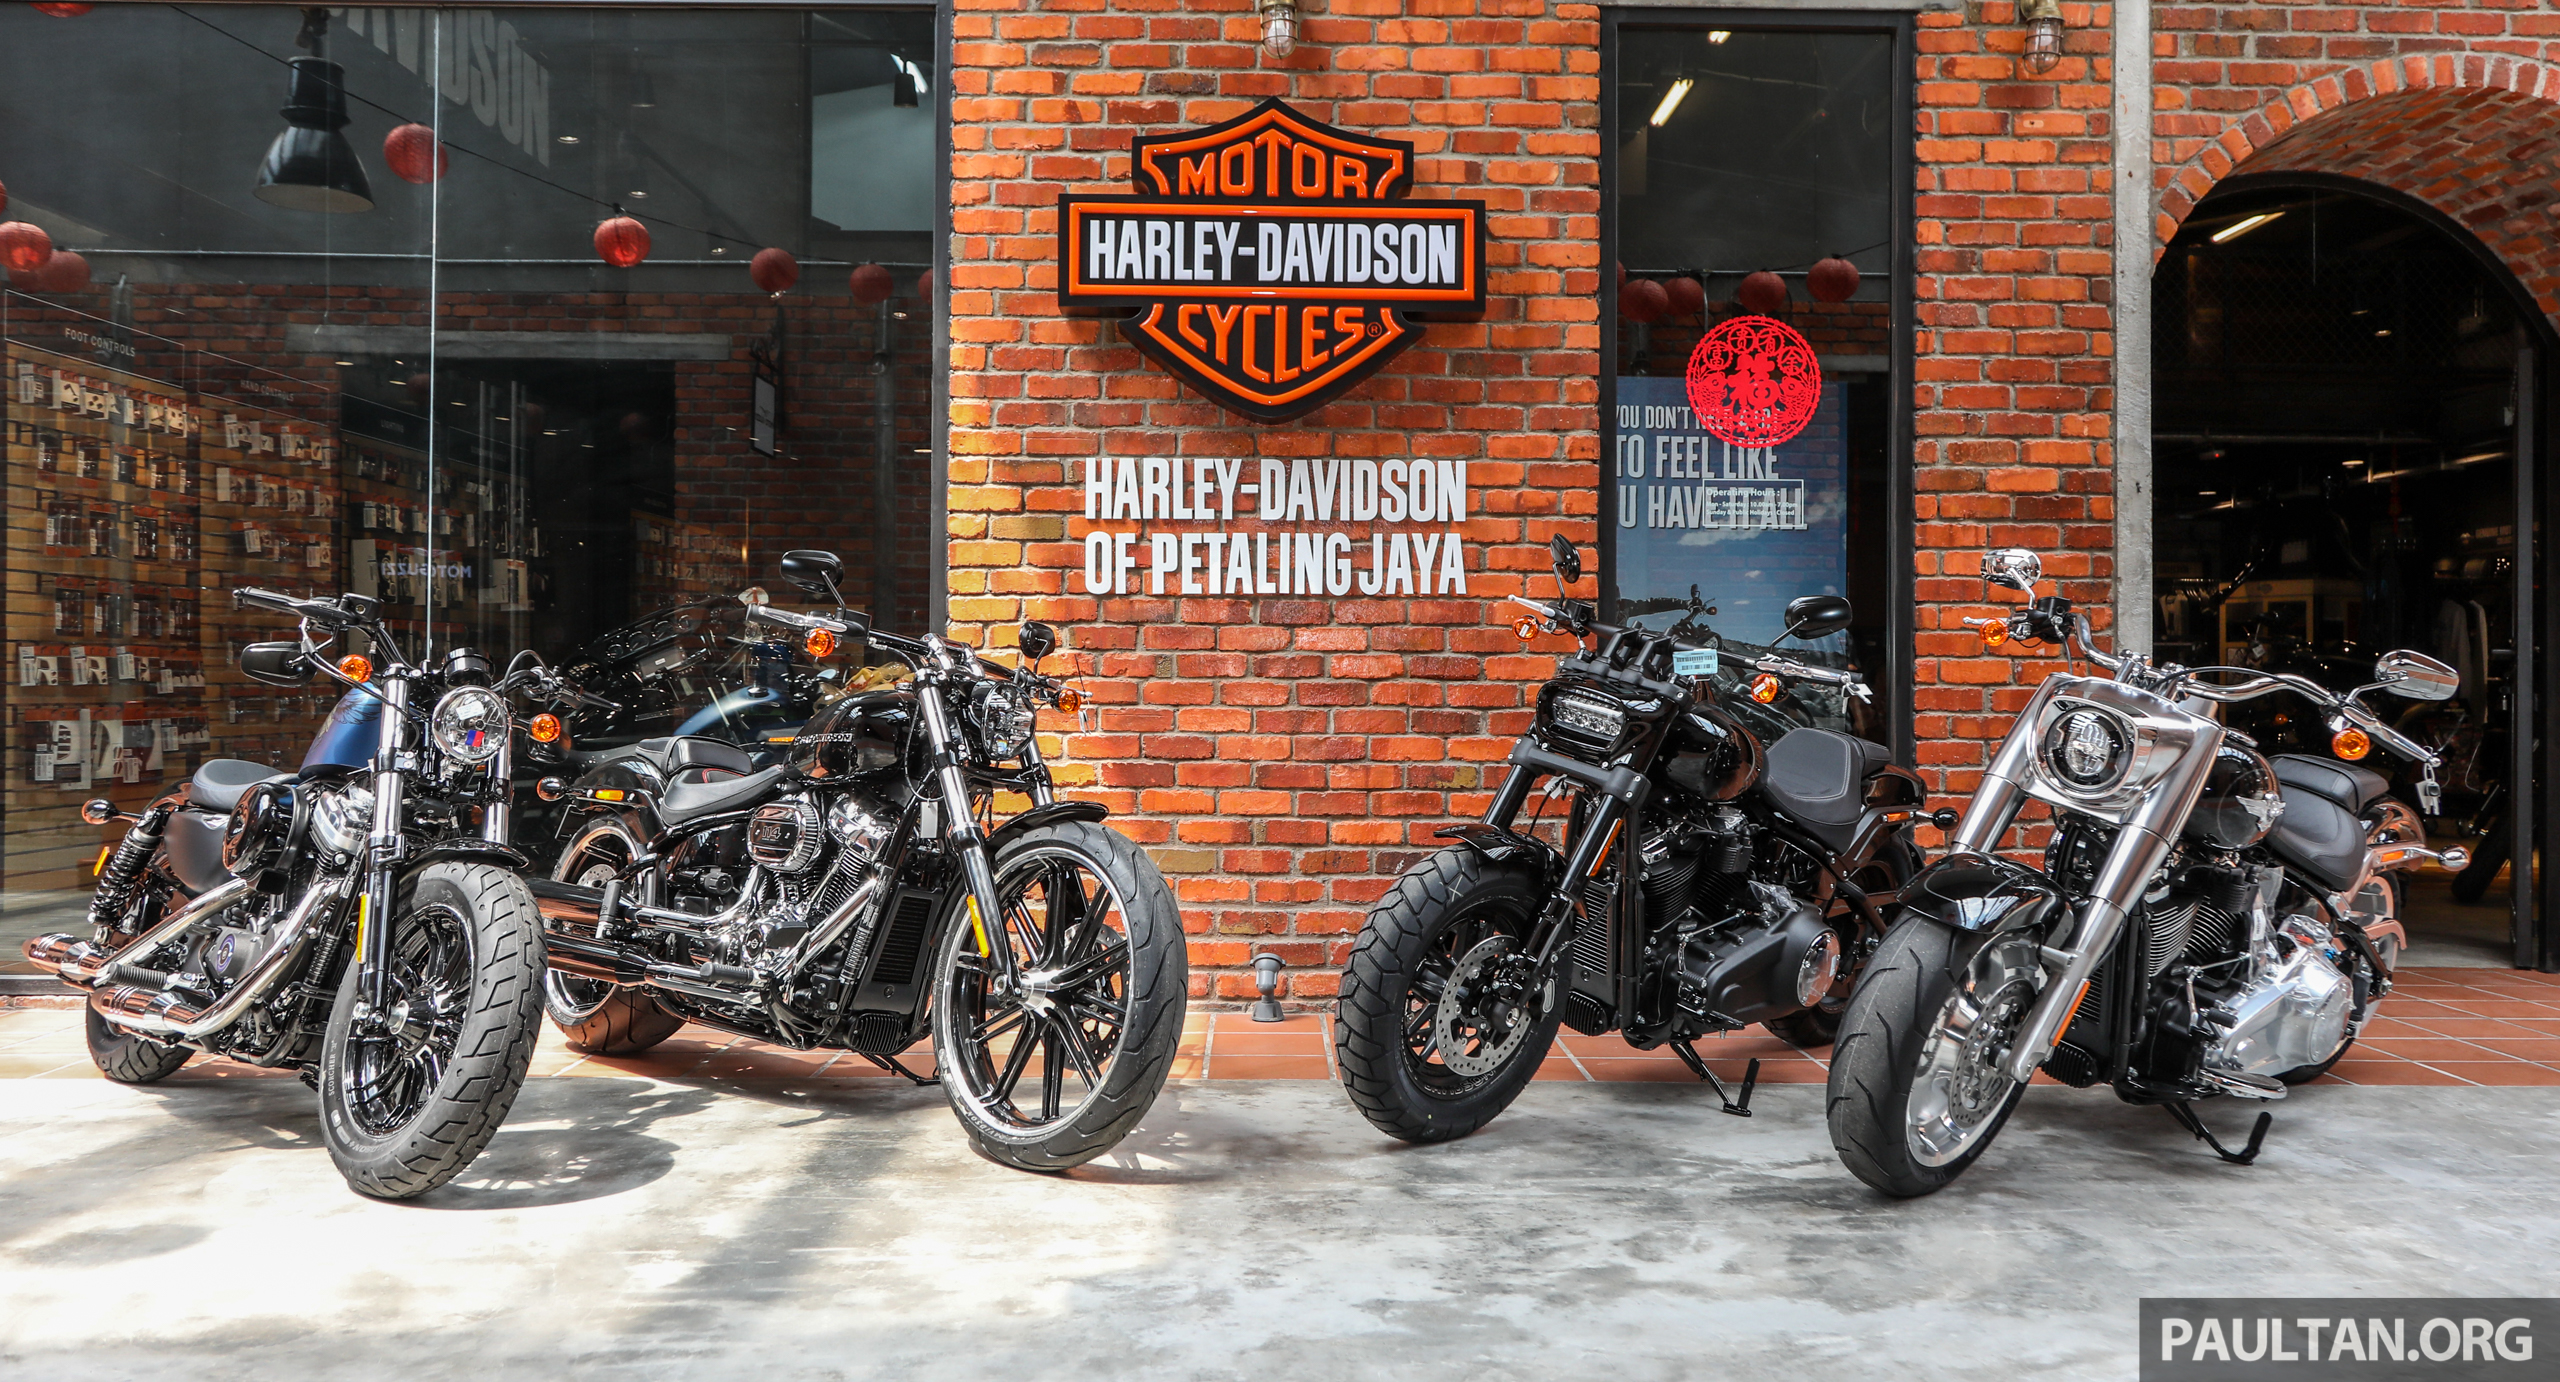 Cheapest Harley Davidson >> 2018 Harley Davidson Malaysia Prices From Rm56k